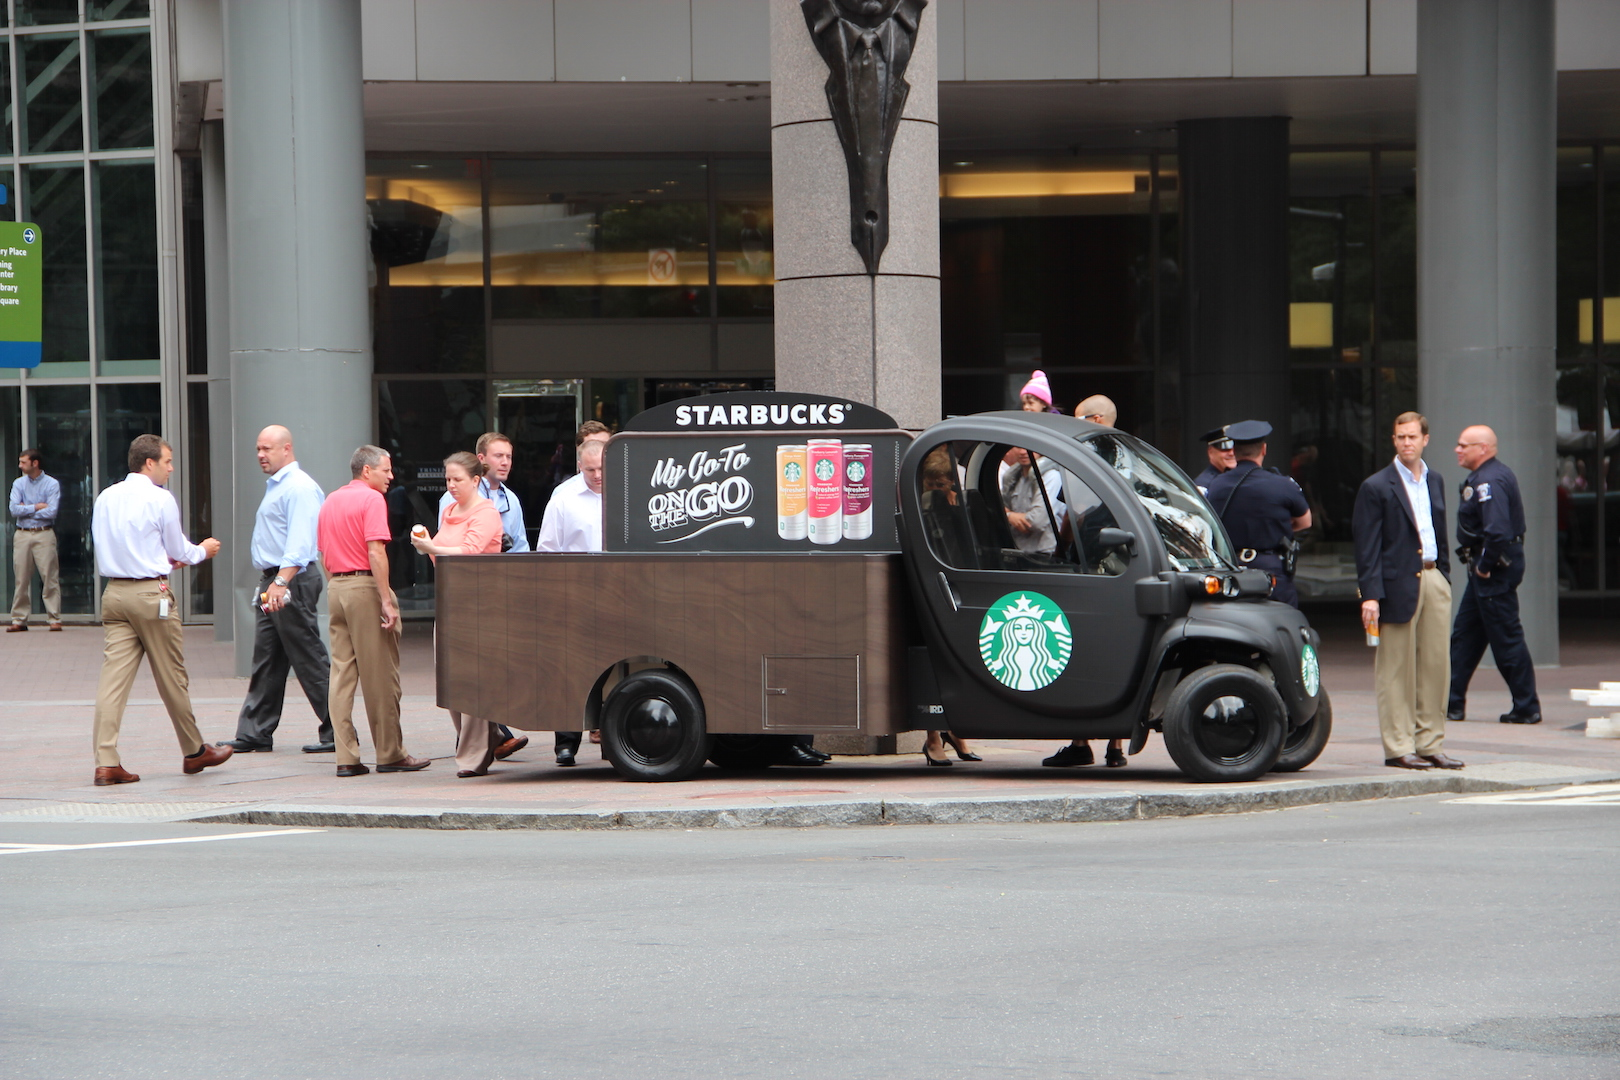 Starbucks Refreshers Product Launch Promotional Tour